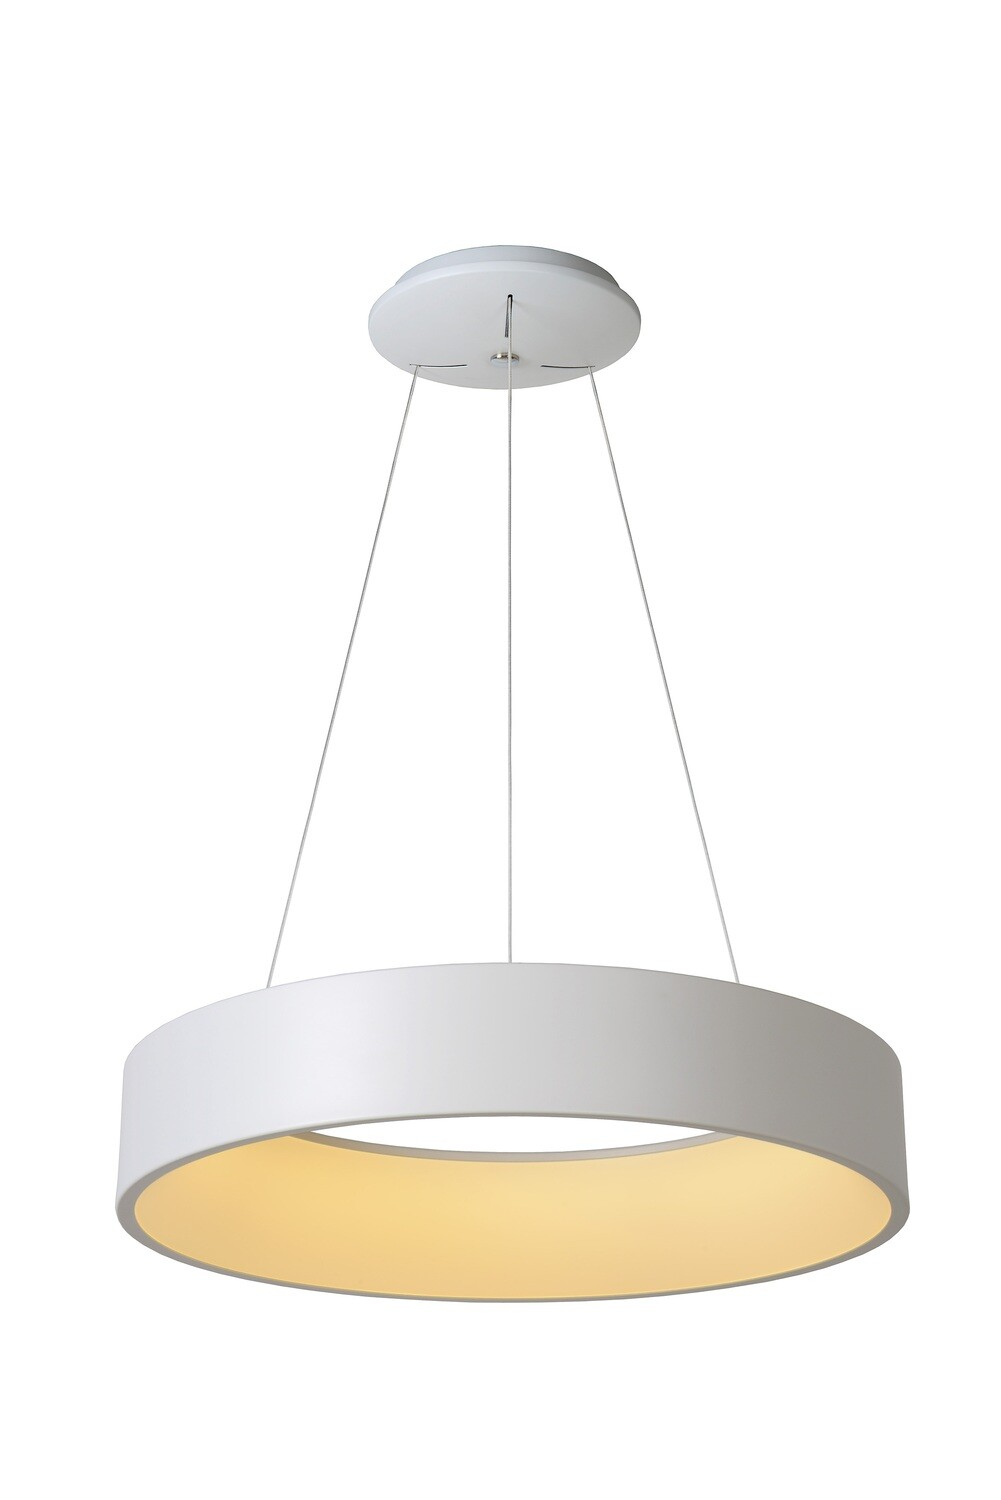 TALOWE LED Pendant light  Ø 60 cm  LED Dimmable 1x39W 3000K White